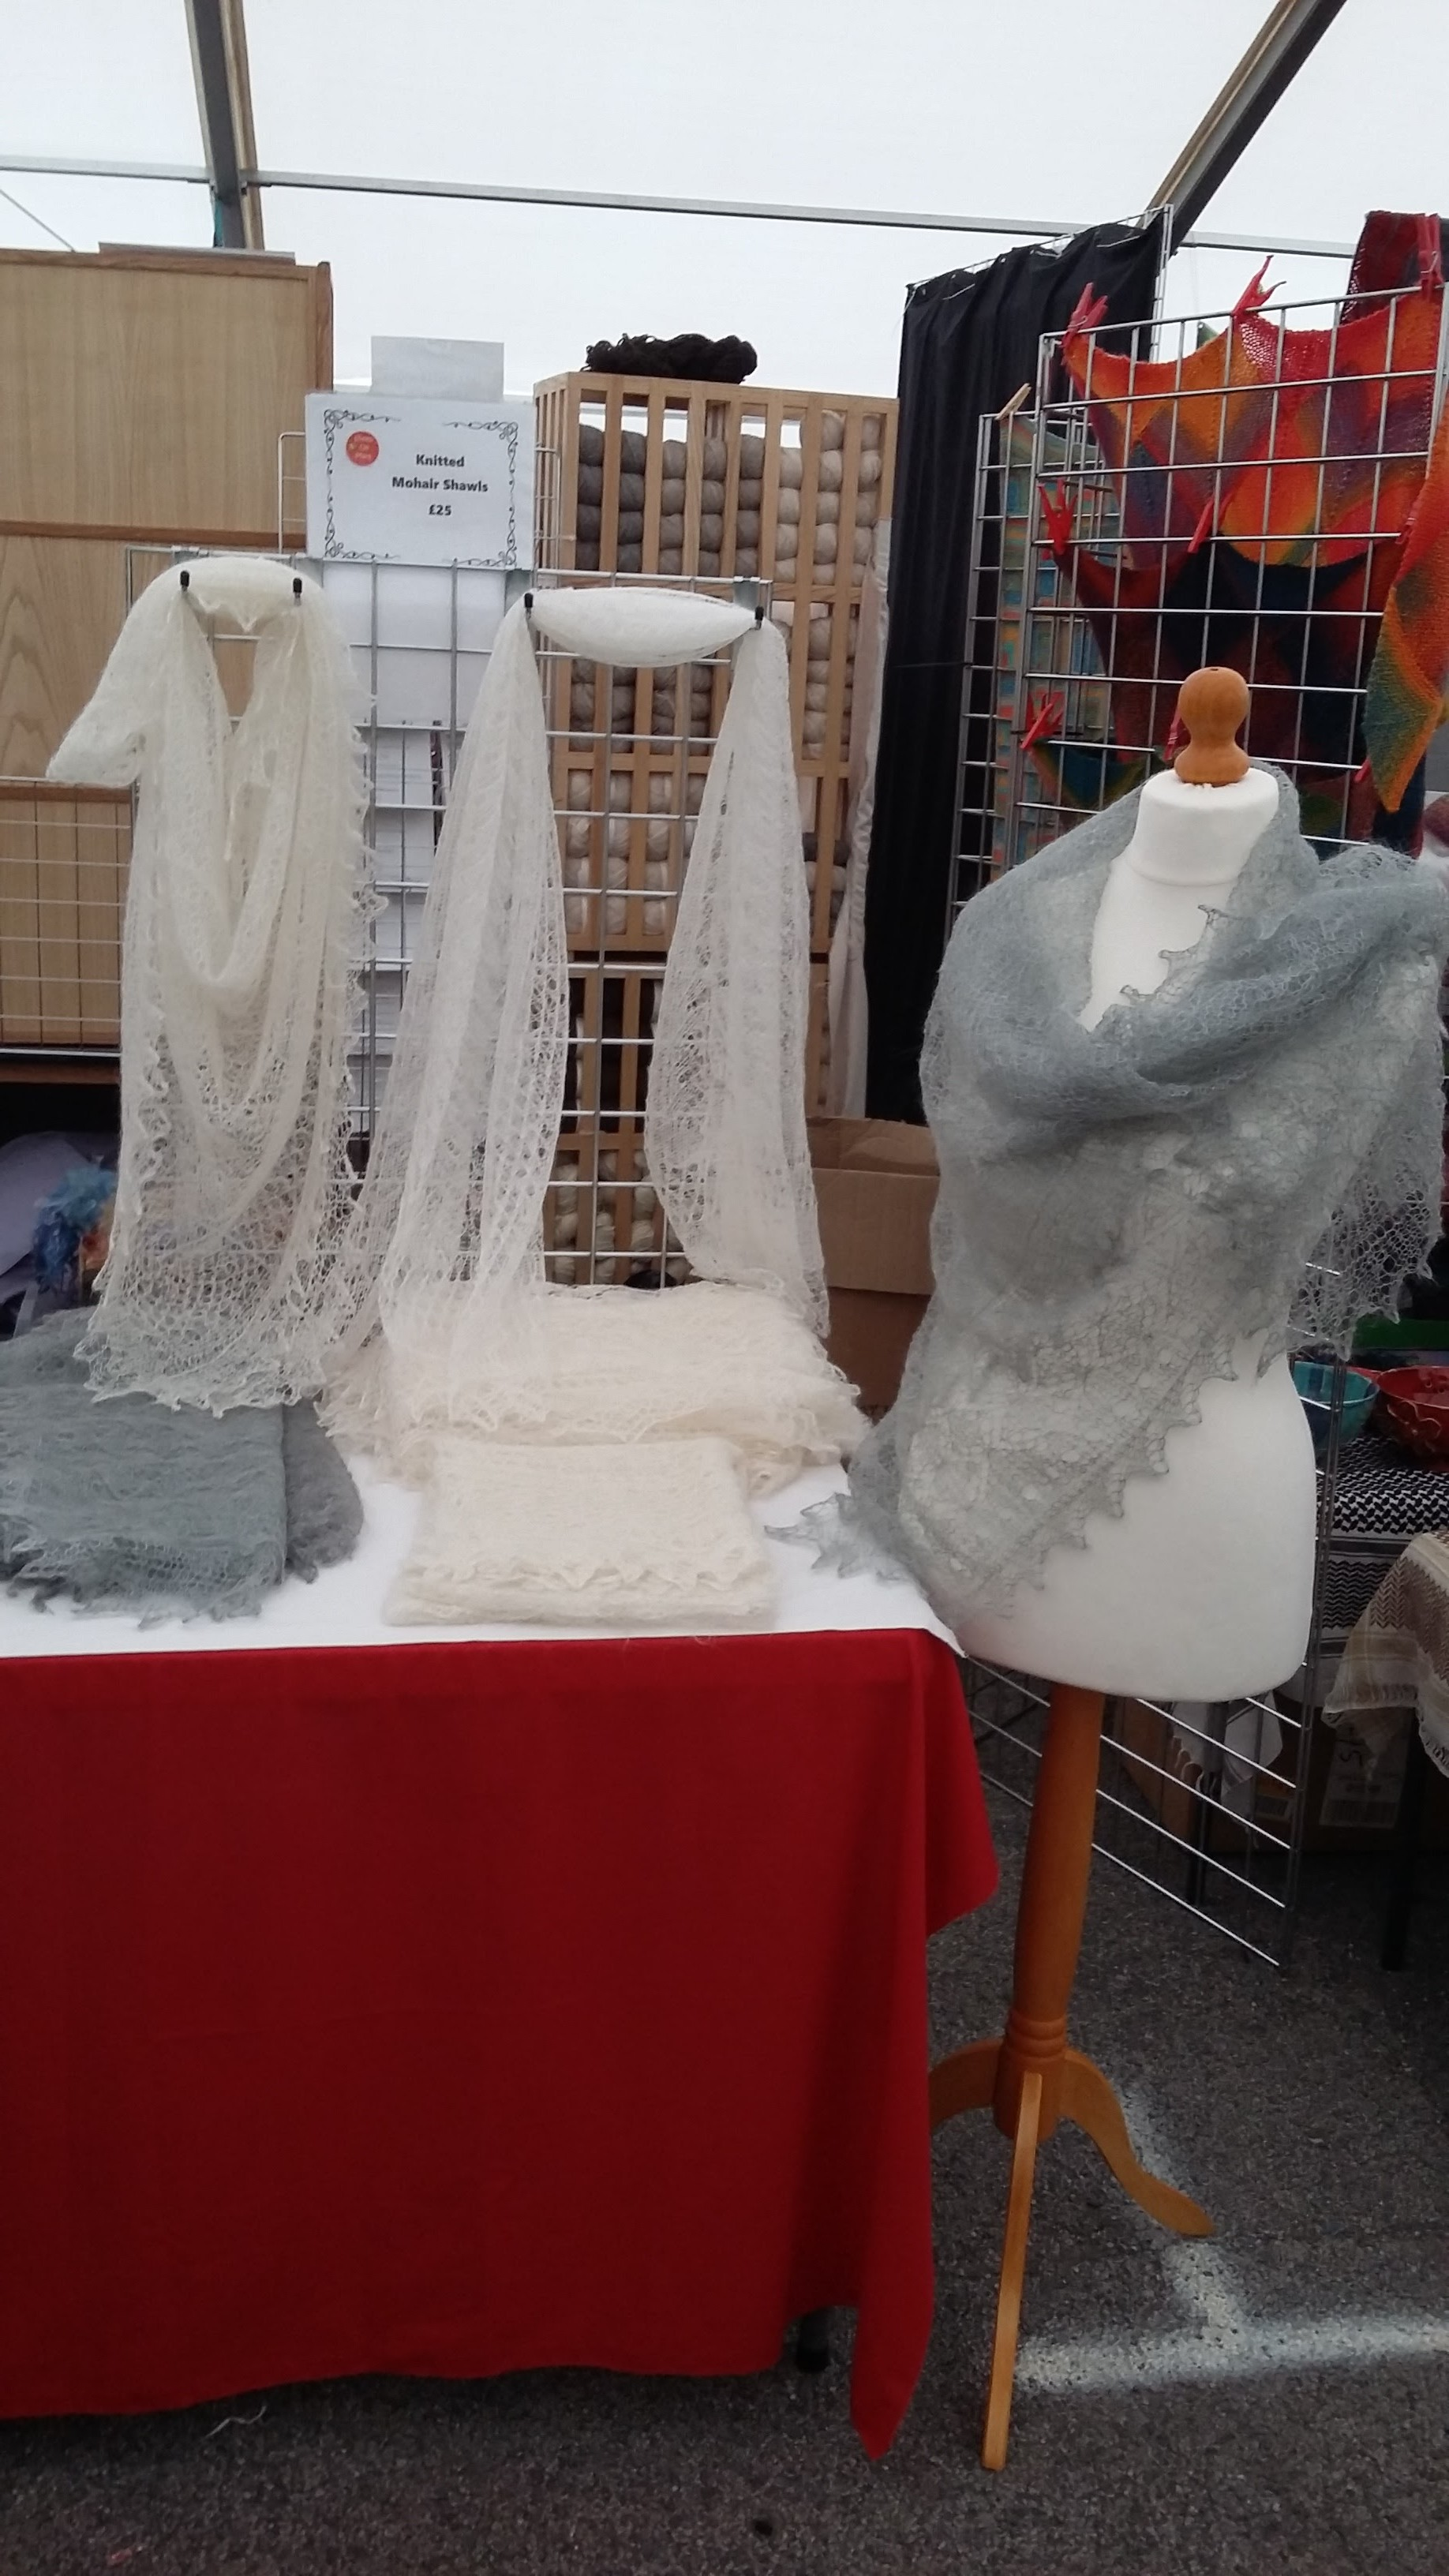 Some gorgeous lace shawls